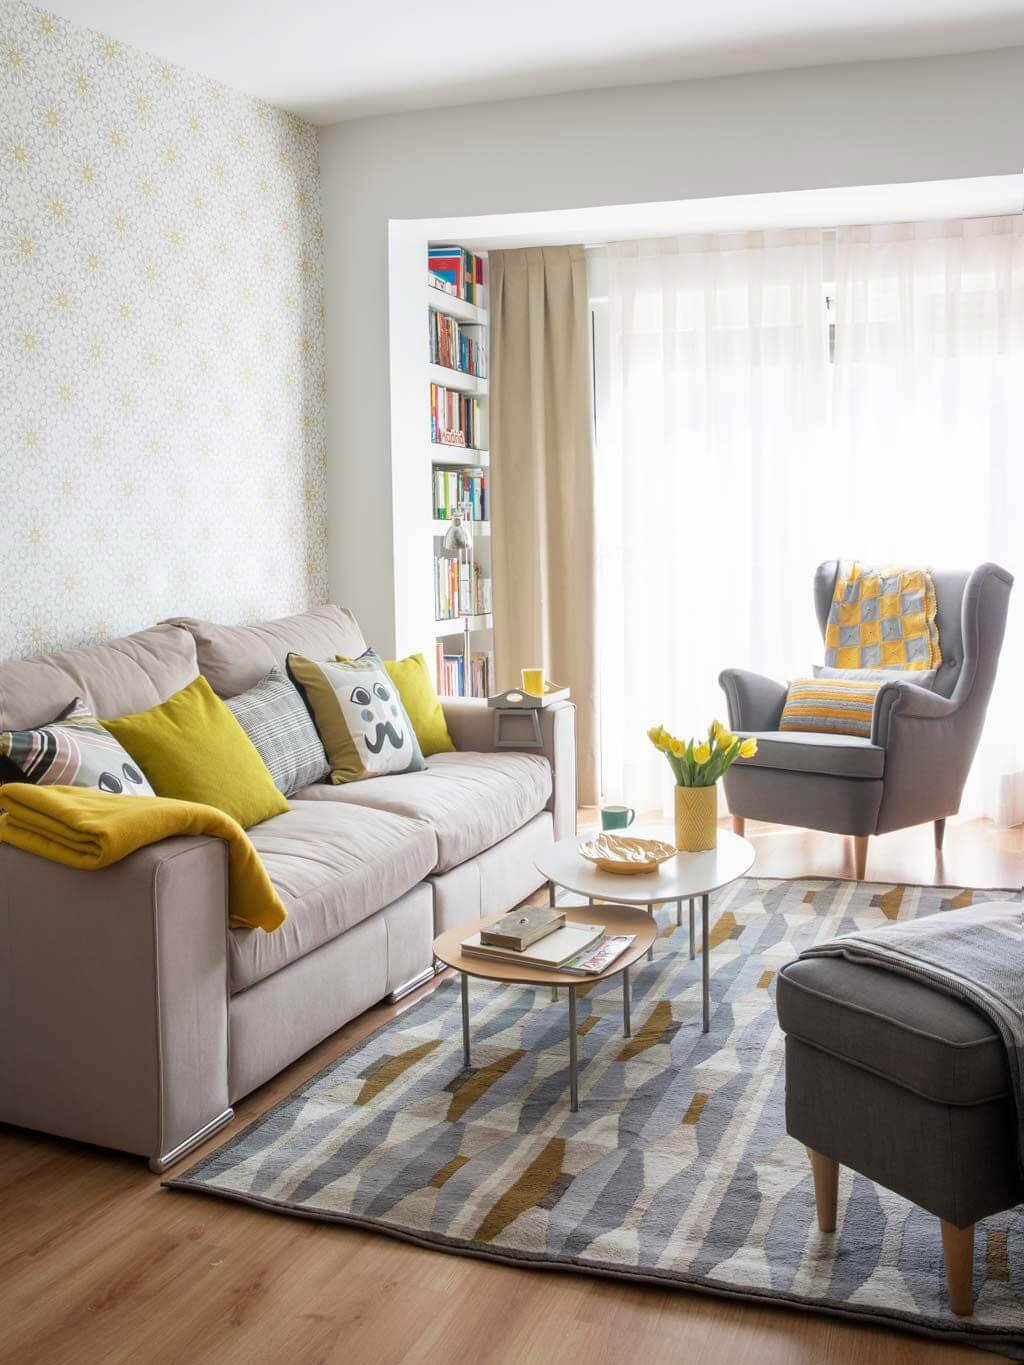 Small Living Room Seating Ideas 25 Best Small Living Room Decor and Design Ideas for 2019